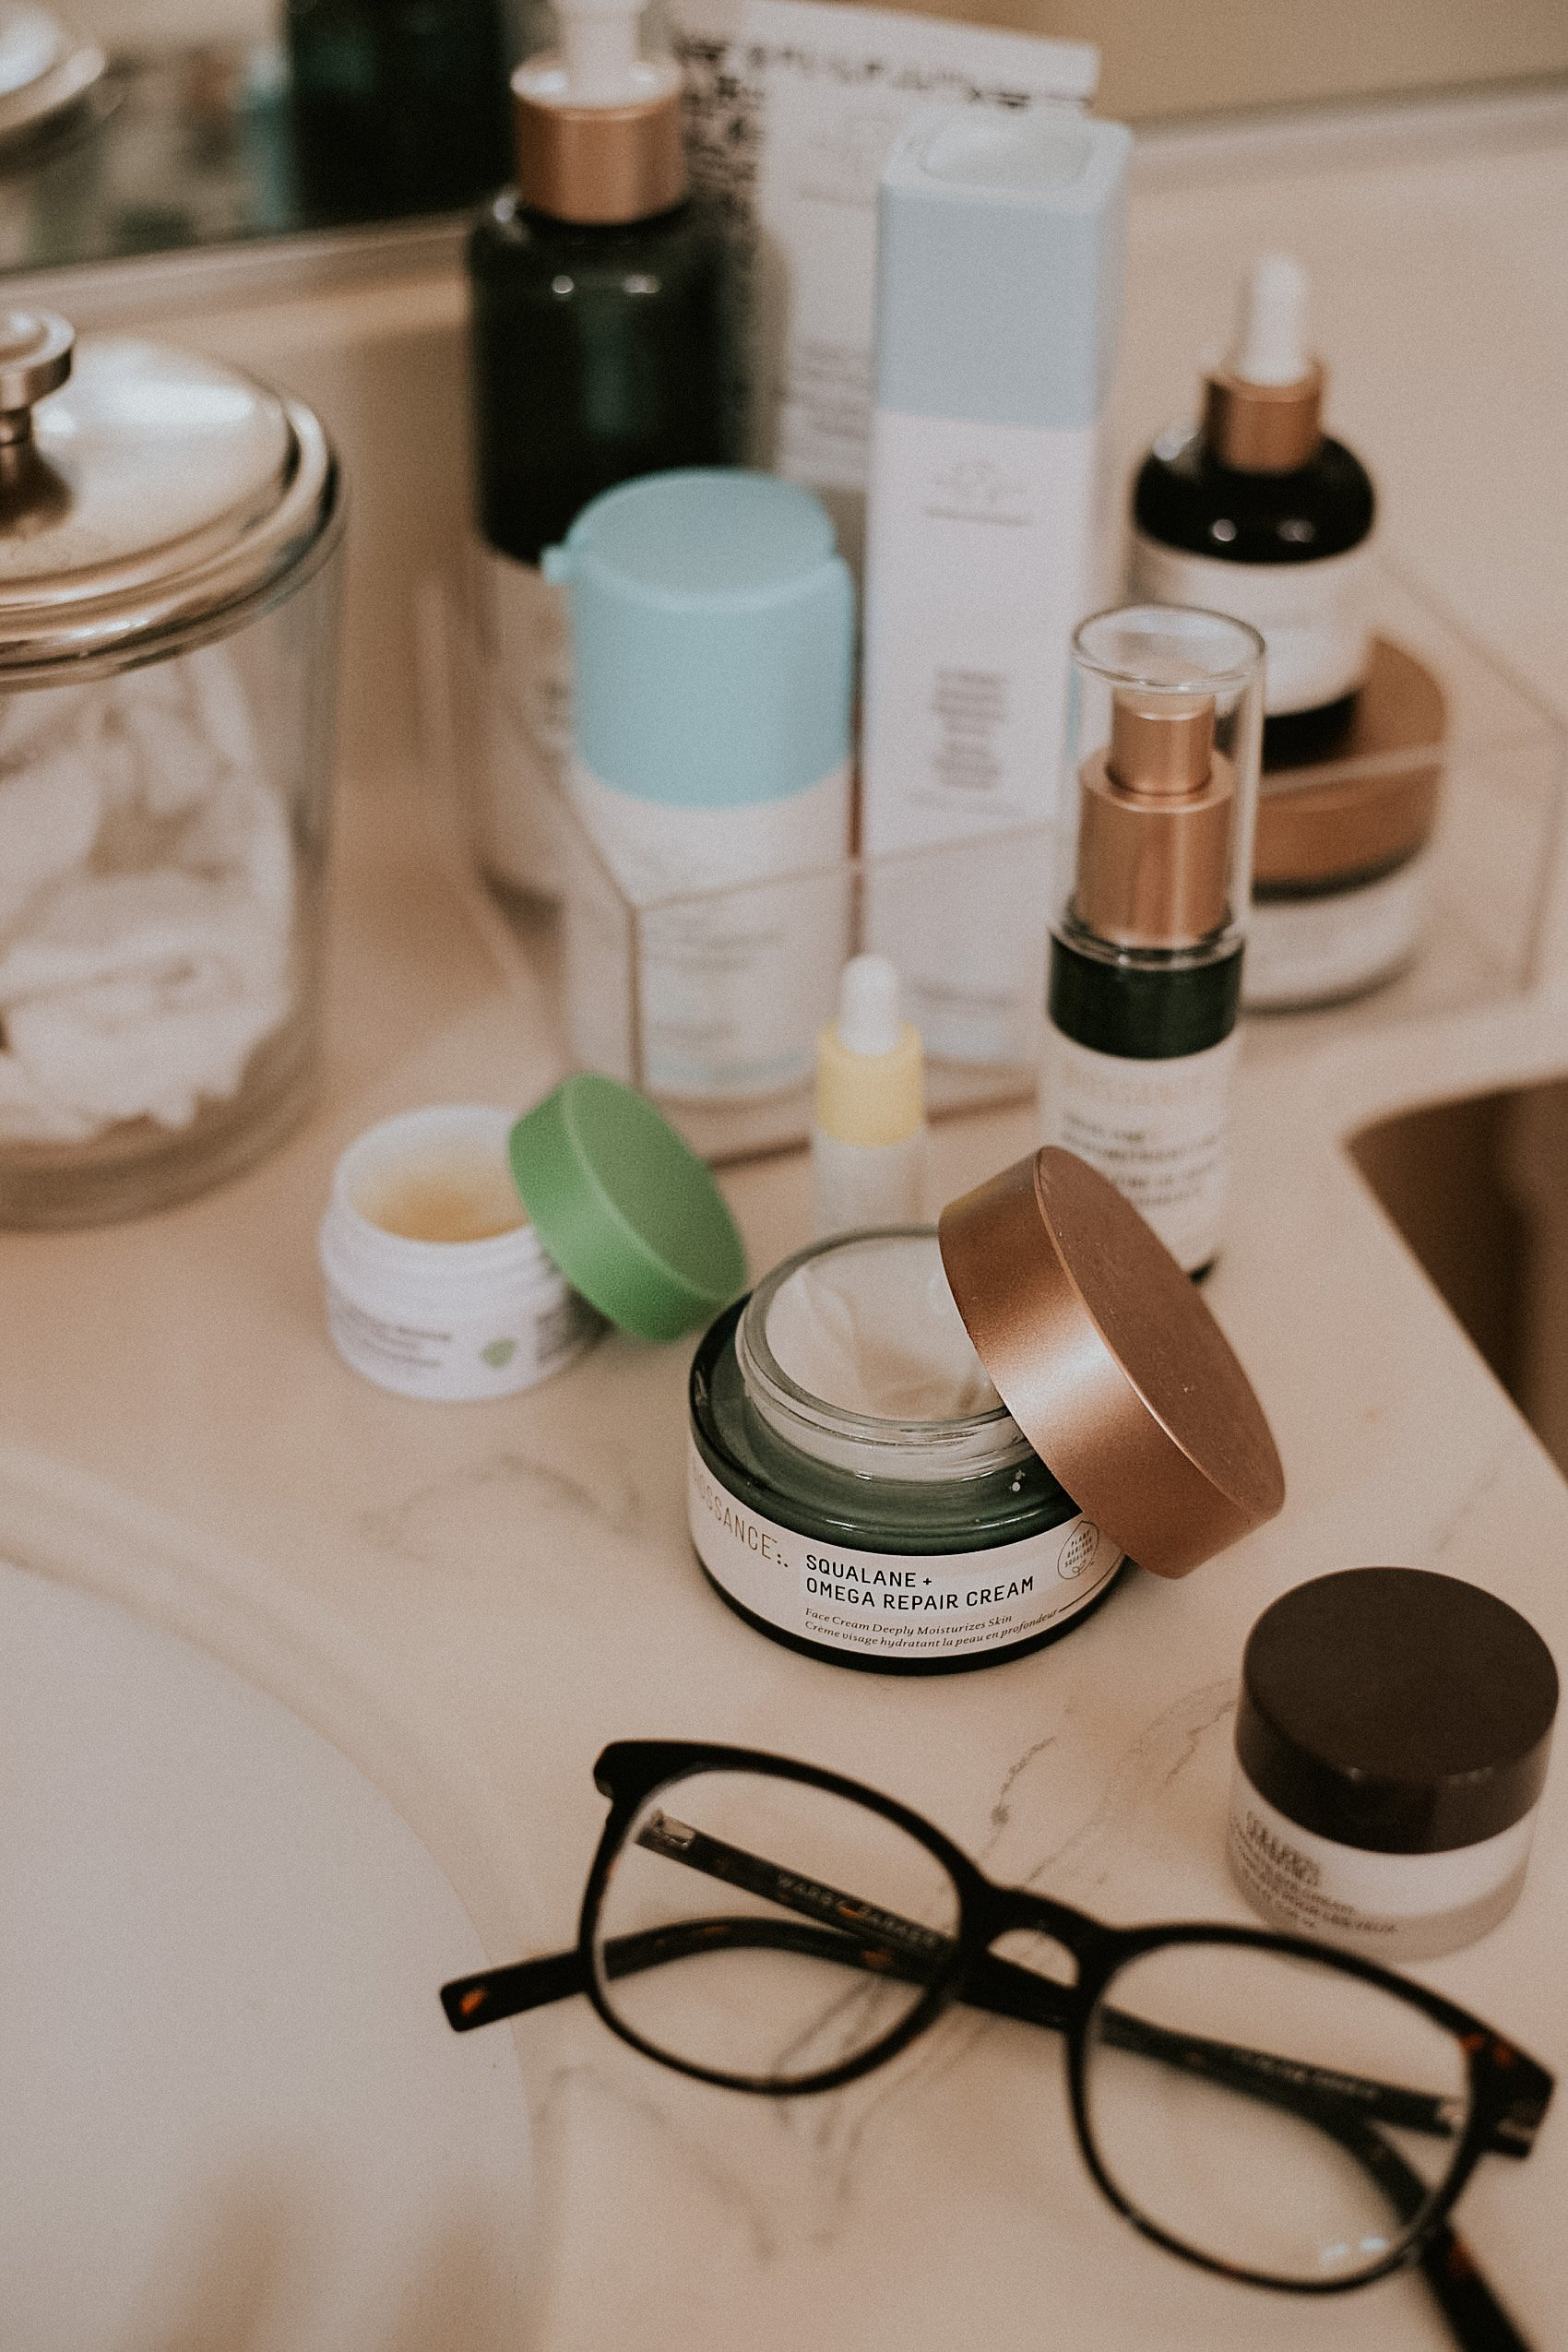 Clean Skincare products for winter skin, Winter Skincare Routine, Bathroom Skincare Picture